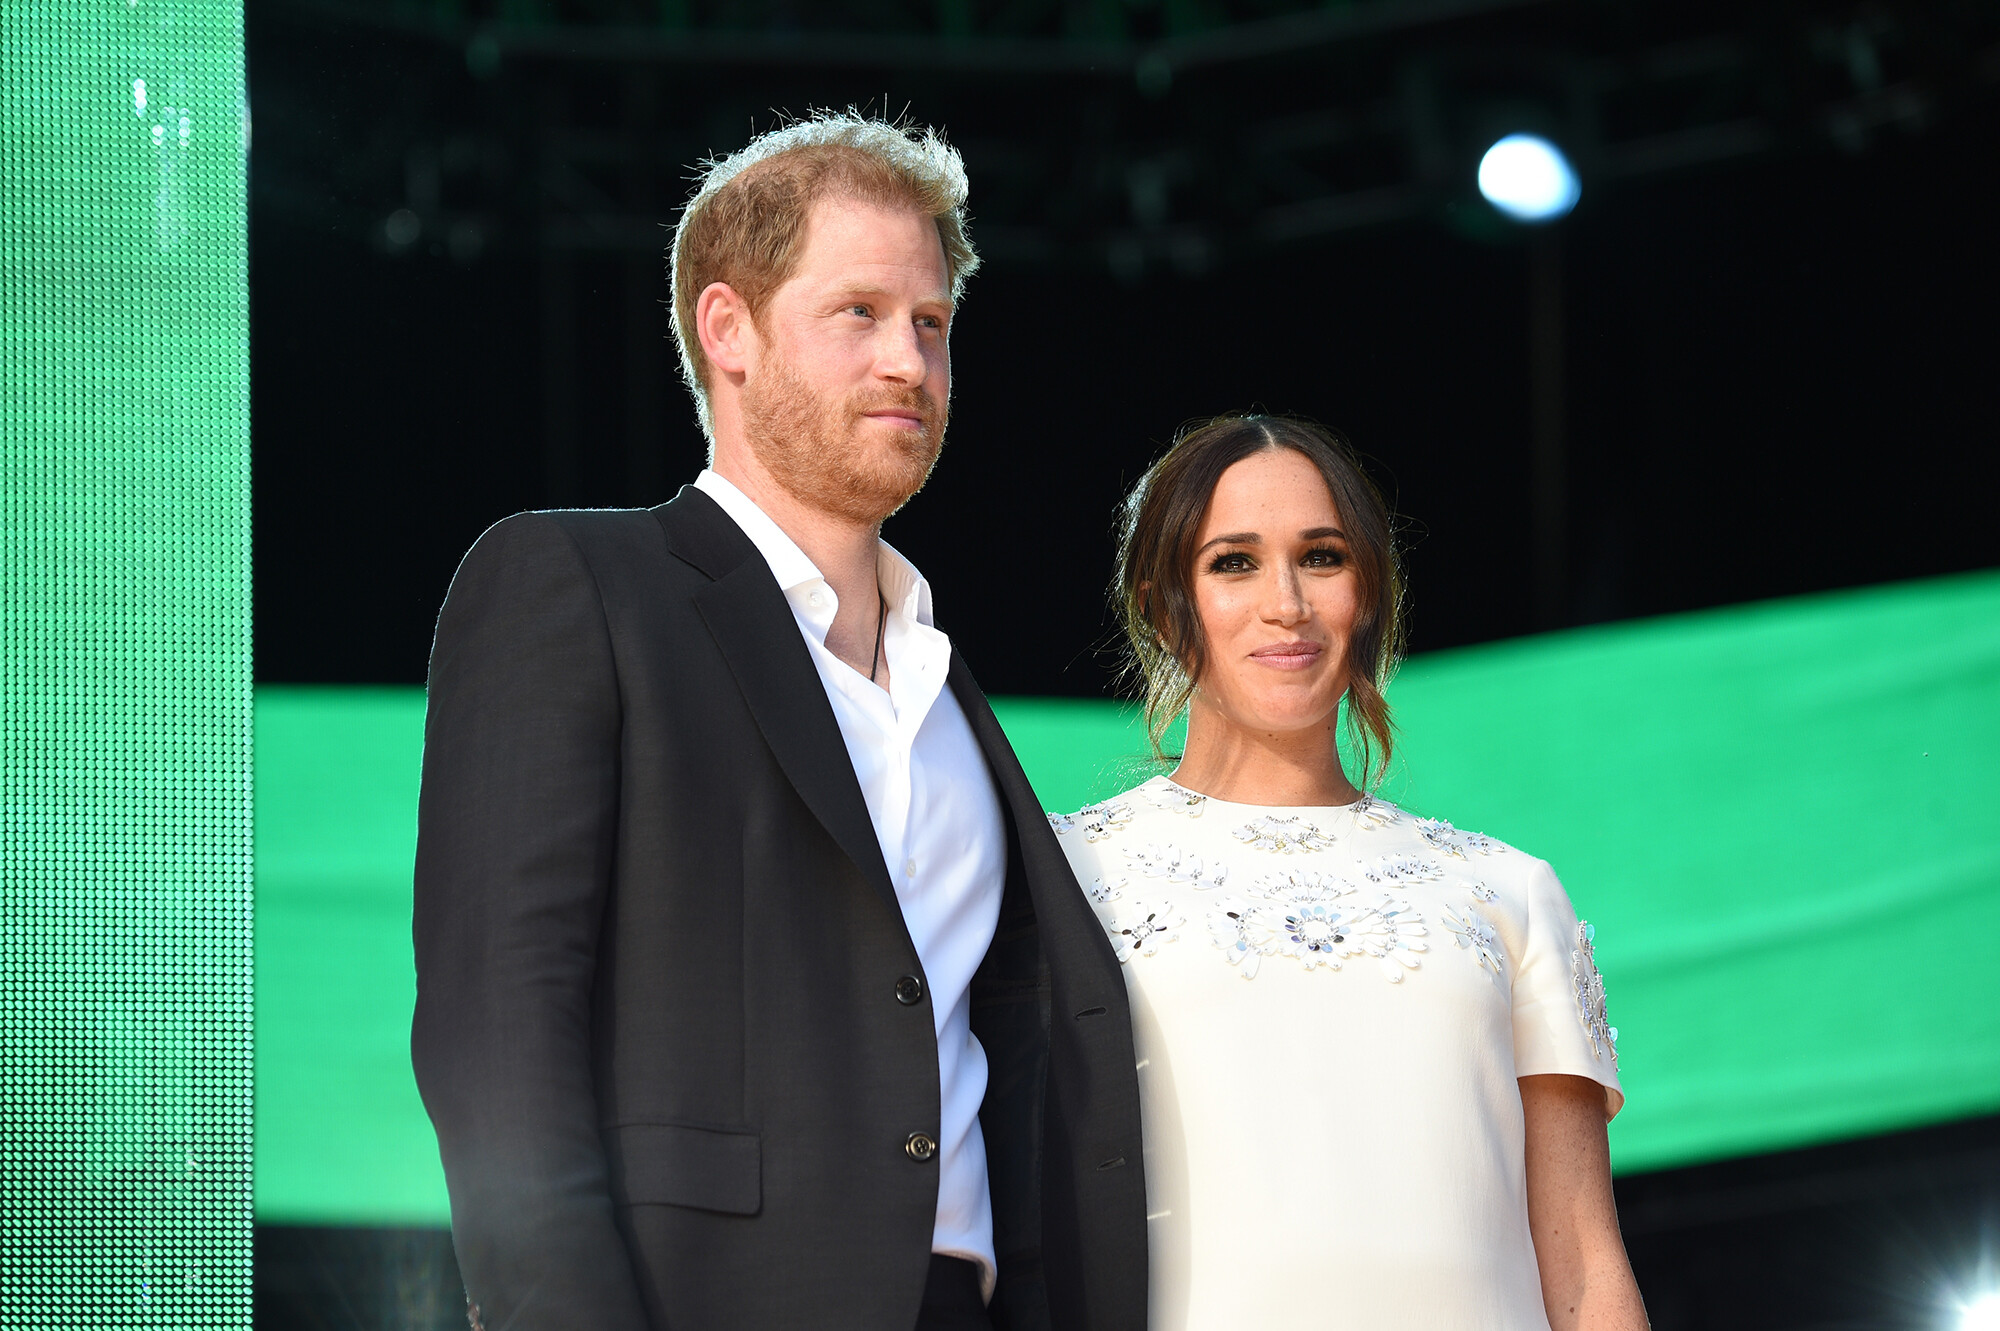 Meghan and Harry are getting into the sustainable investing game